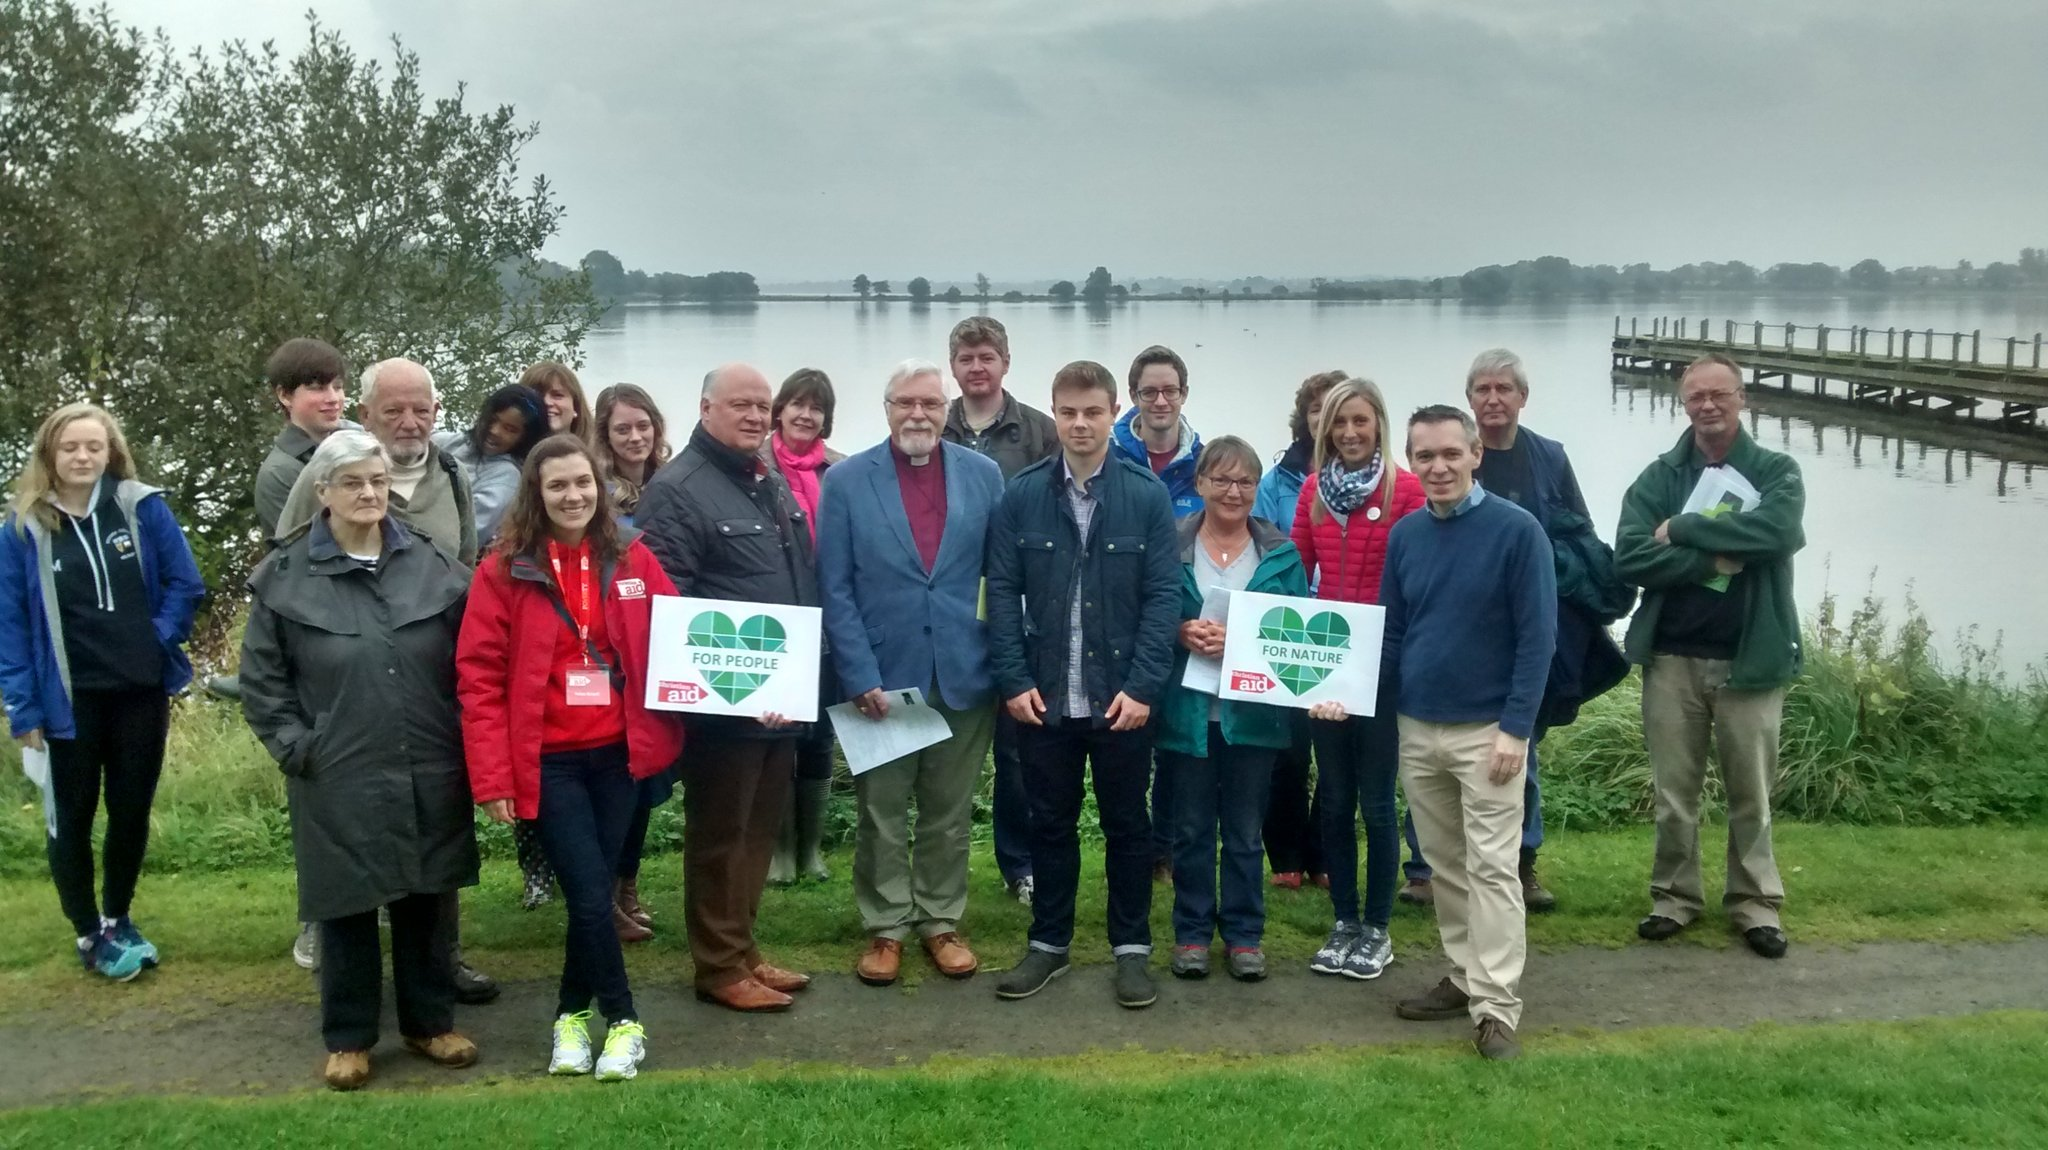 Great day to #SpeakUp for Nature and Clmate Change at Oxford Island with @DavidSimpsonDUP & @carlalockhart. @TheCCoalition @ChristianAidIrl https://t.co/GkRok8BqyR